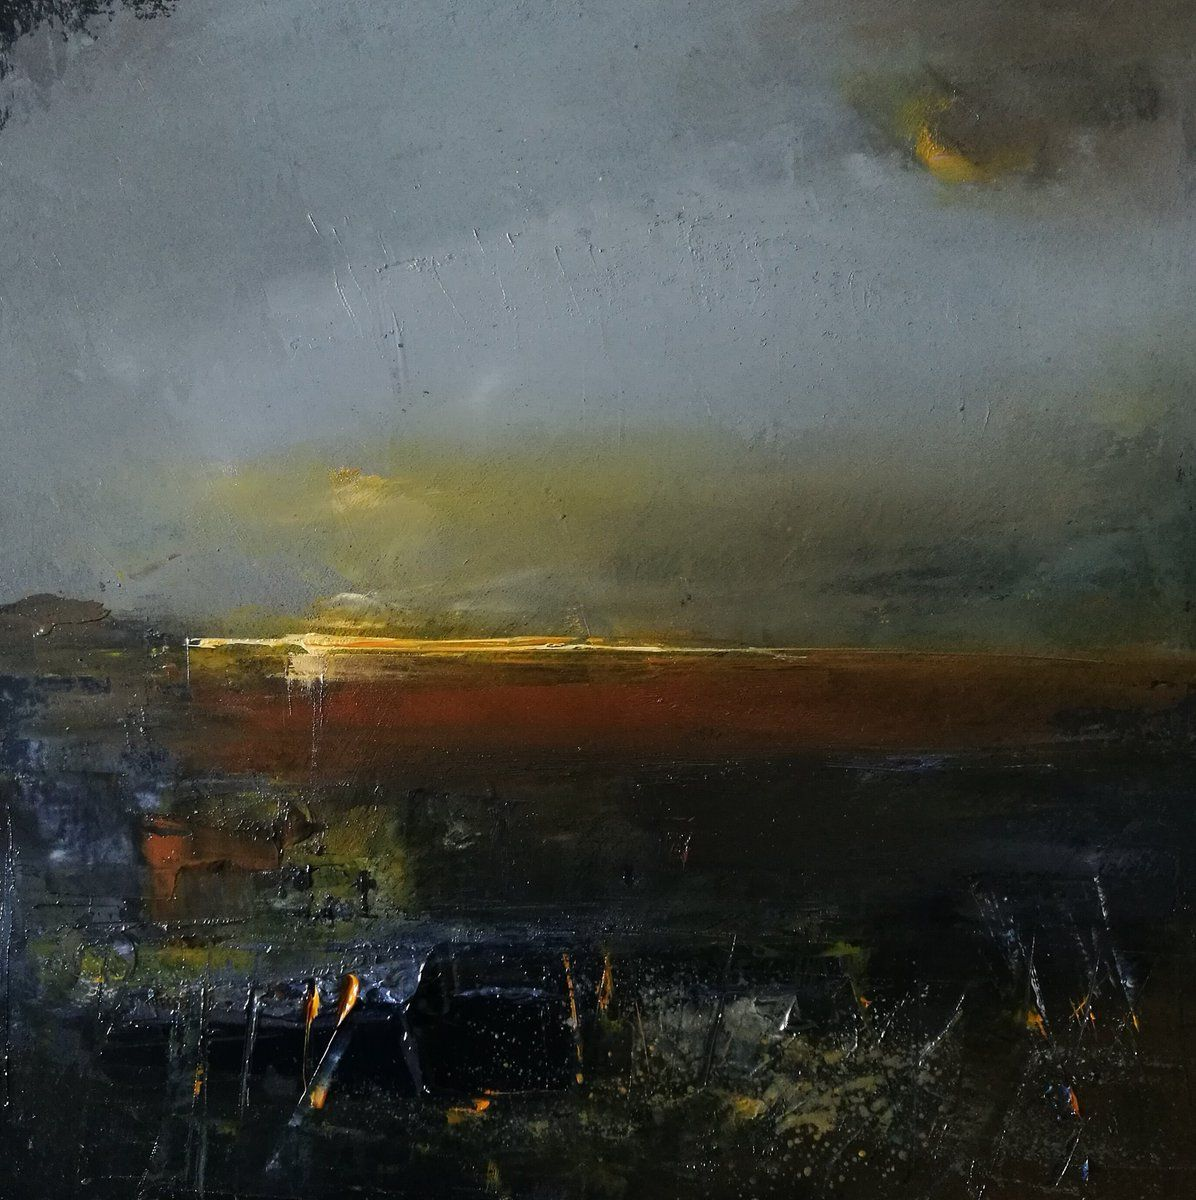 Across the estuary to the sound of a curlew #art #Artworks #contemporarypainting #contemporaryart #originalart #originalartist #originalart @andrewphmusic @grasscutmusic #estuaries #sunsets #oilpainting #painting #coastalpainting #artspic.twitter.com/4Z38tpEQ3O